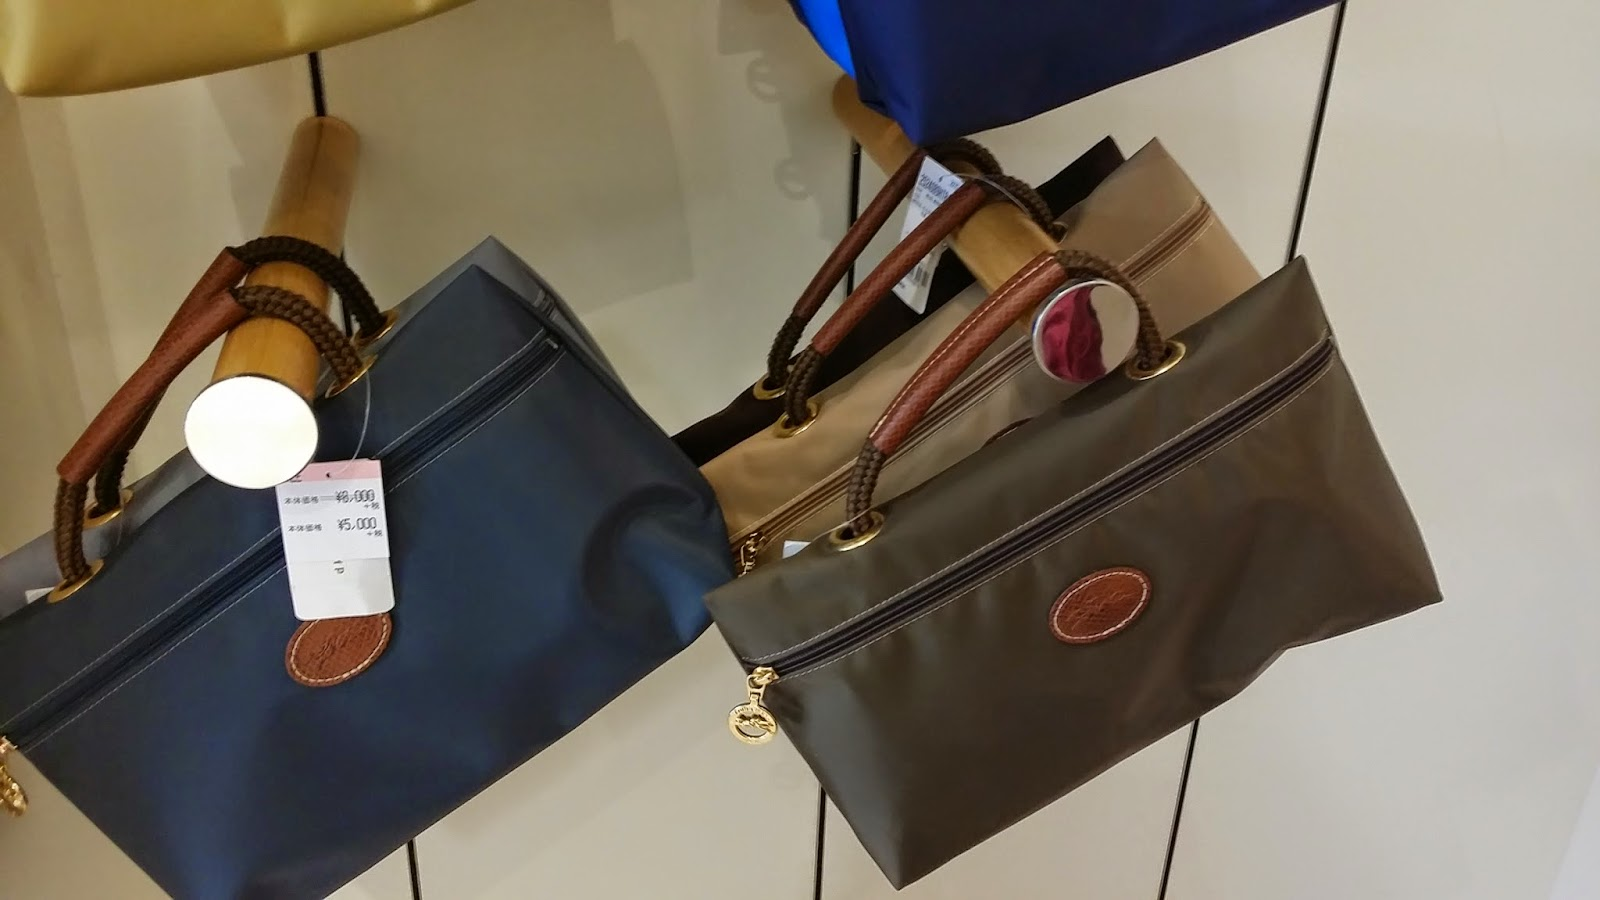 cheap longchamp outlet cvm9  Cant believe actually Longchamp quite cheap here !! The ones below are 5000  Yen